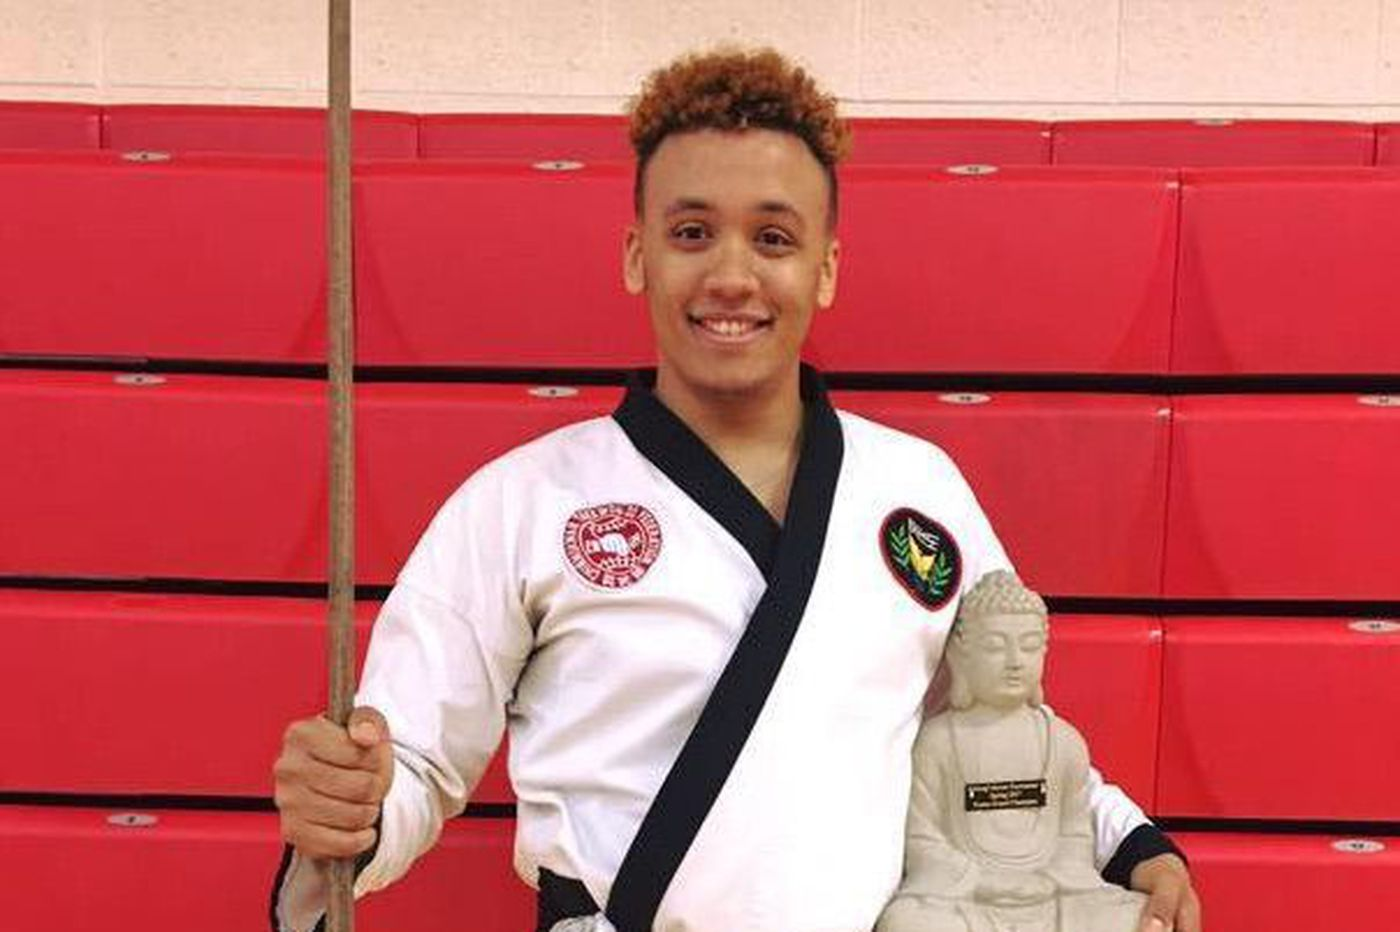 Montgomery County karate instructor gets 6½ years in prison for molesting teenage boys